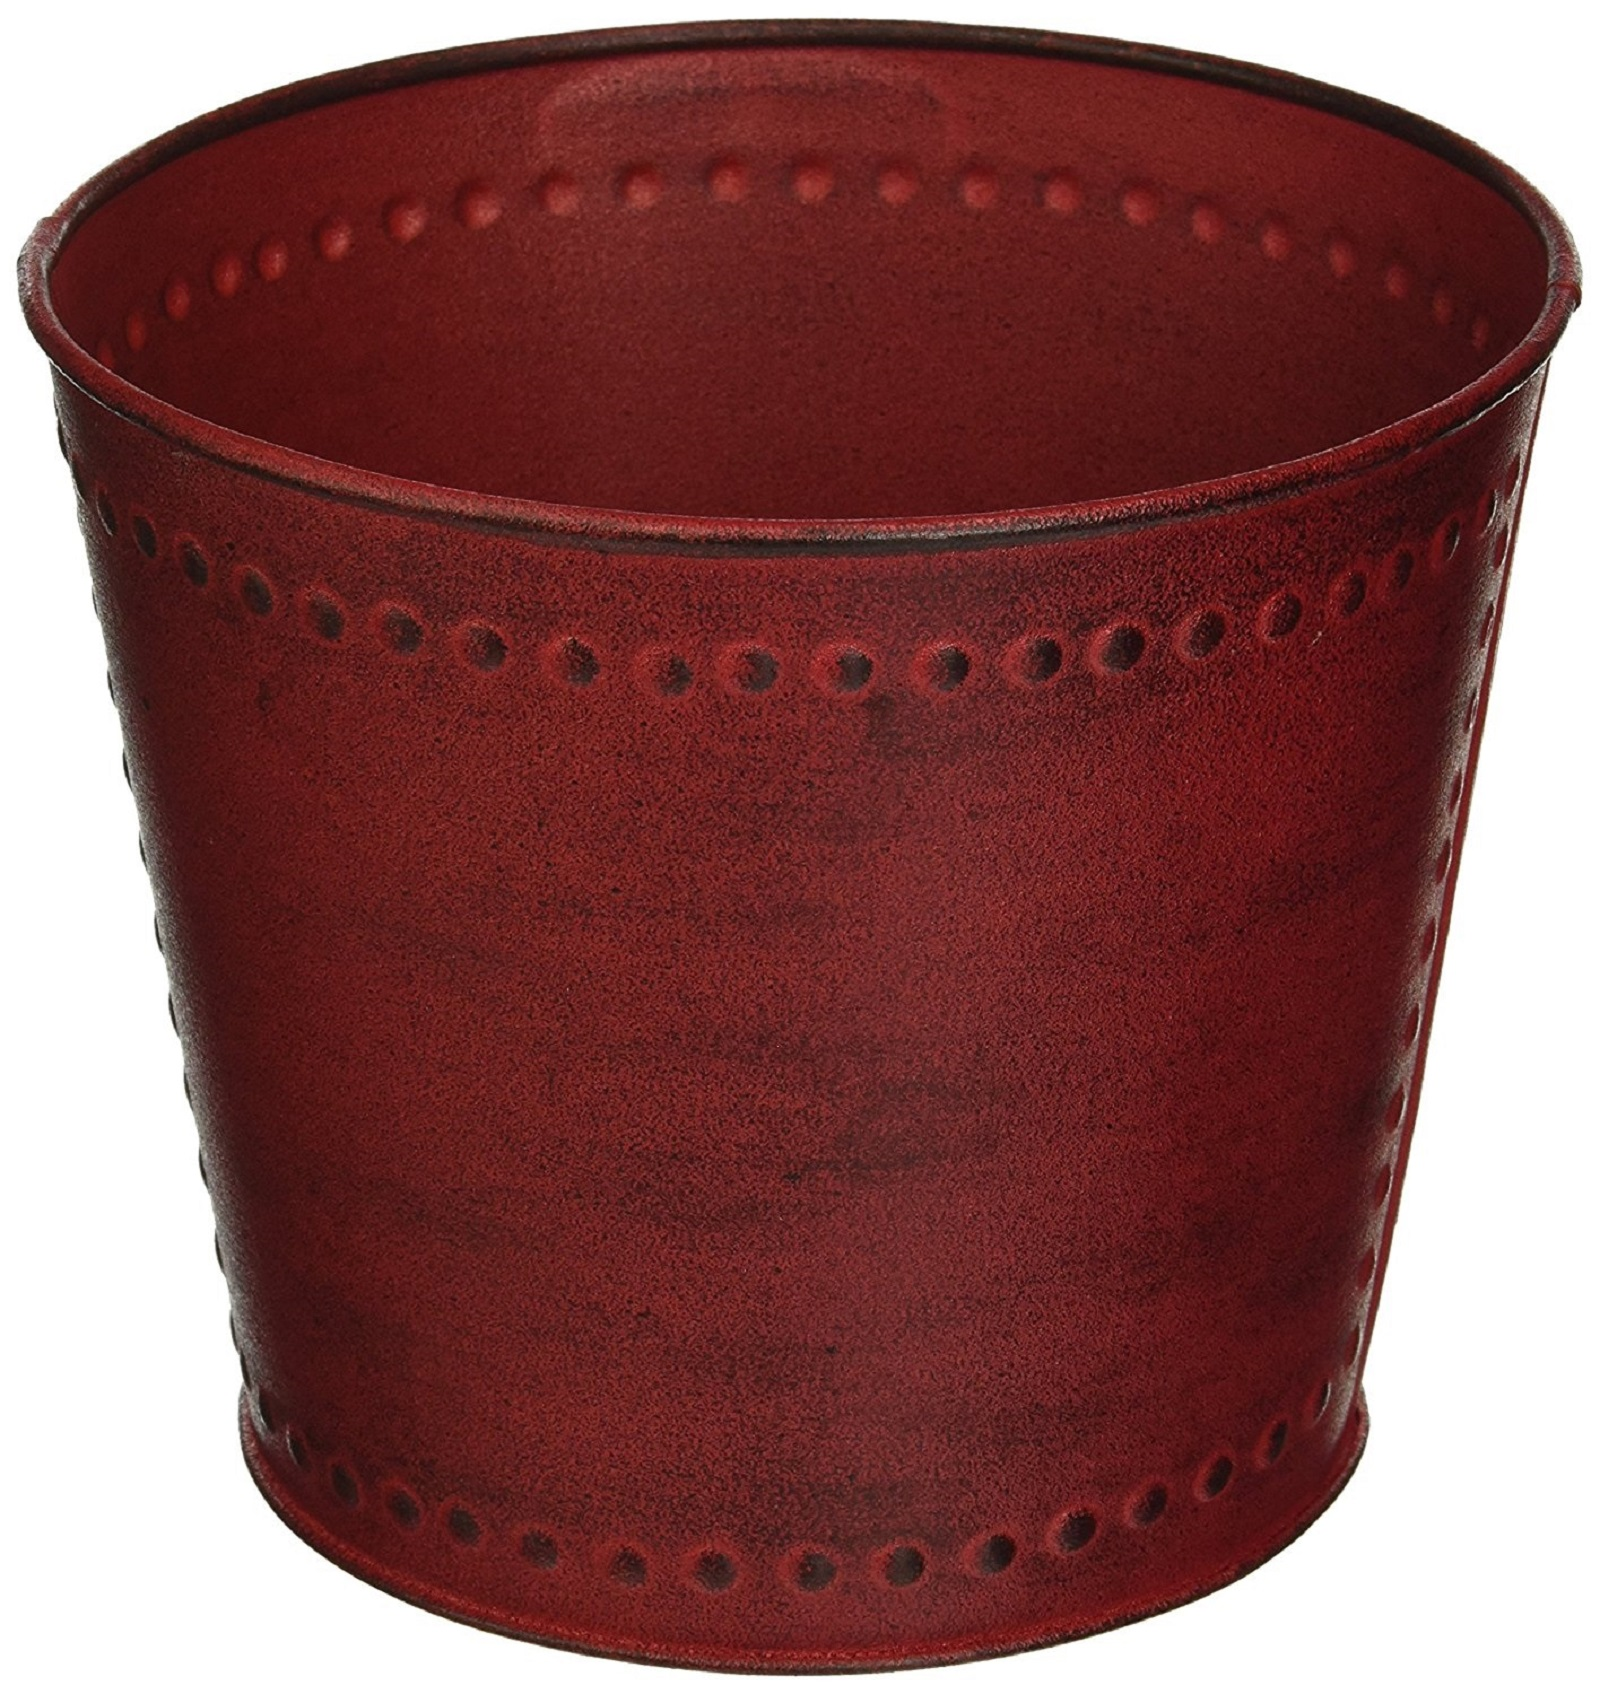 "Robert Allen Home & Garden Metal Round Planter 10"""" Red"